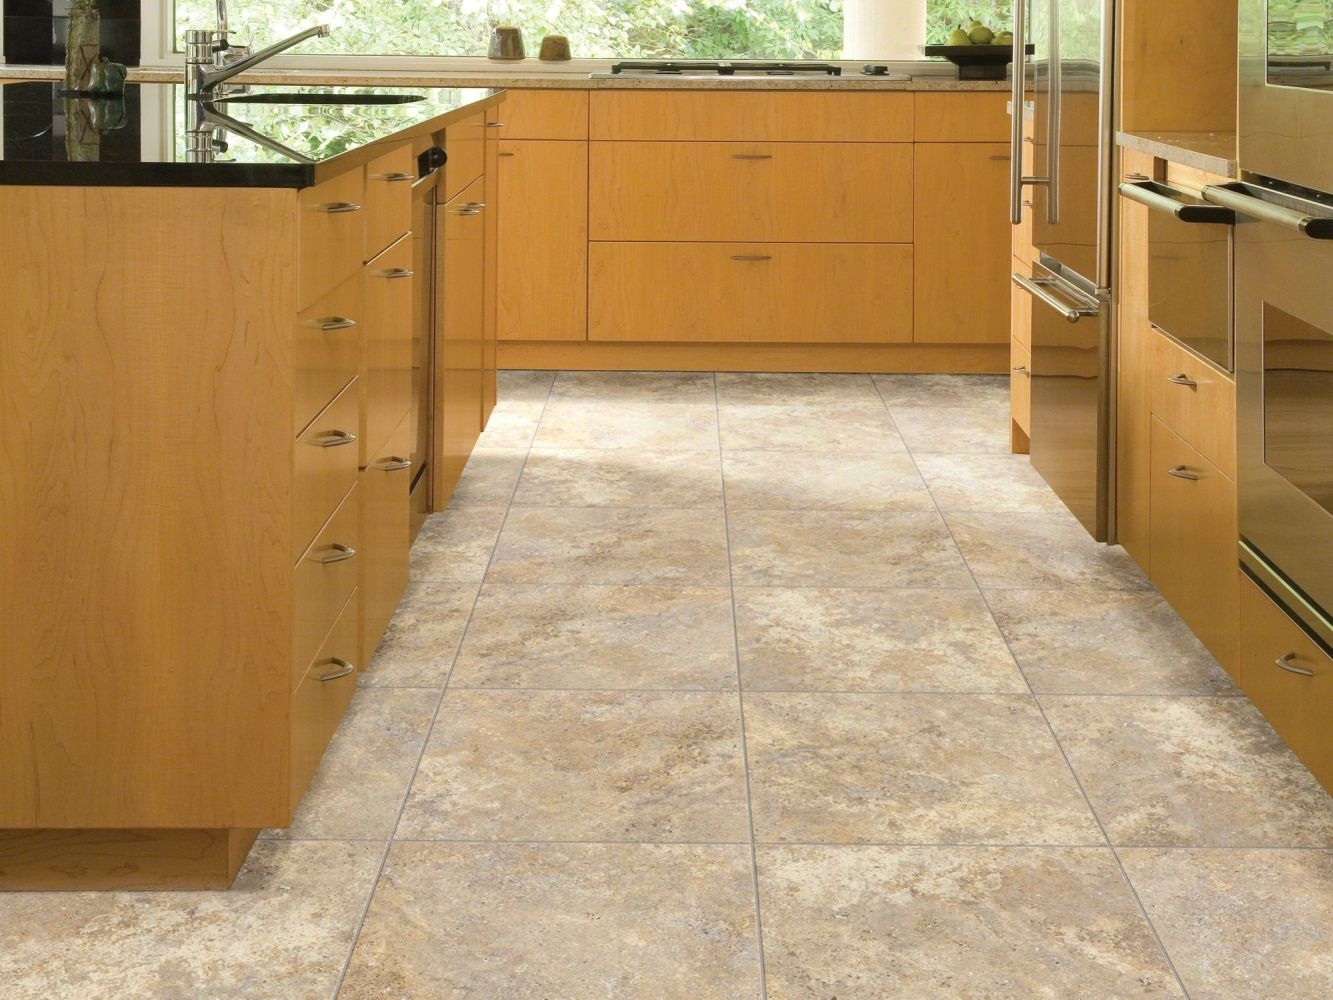 Shaw Floors Resilient Residential Resort Tile Cashmere 00240_0189V